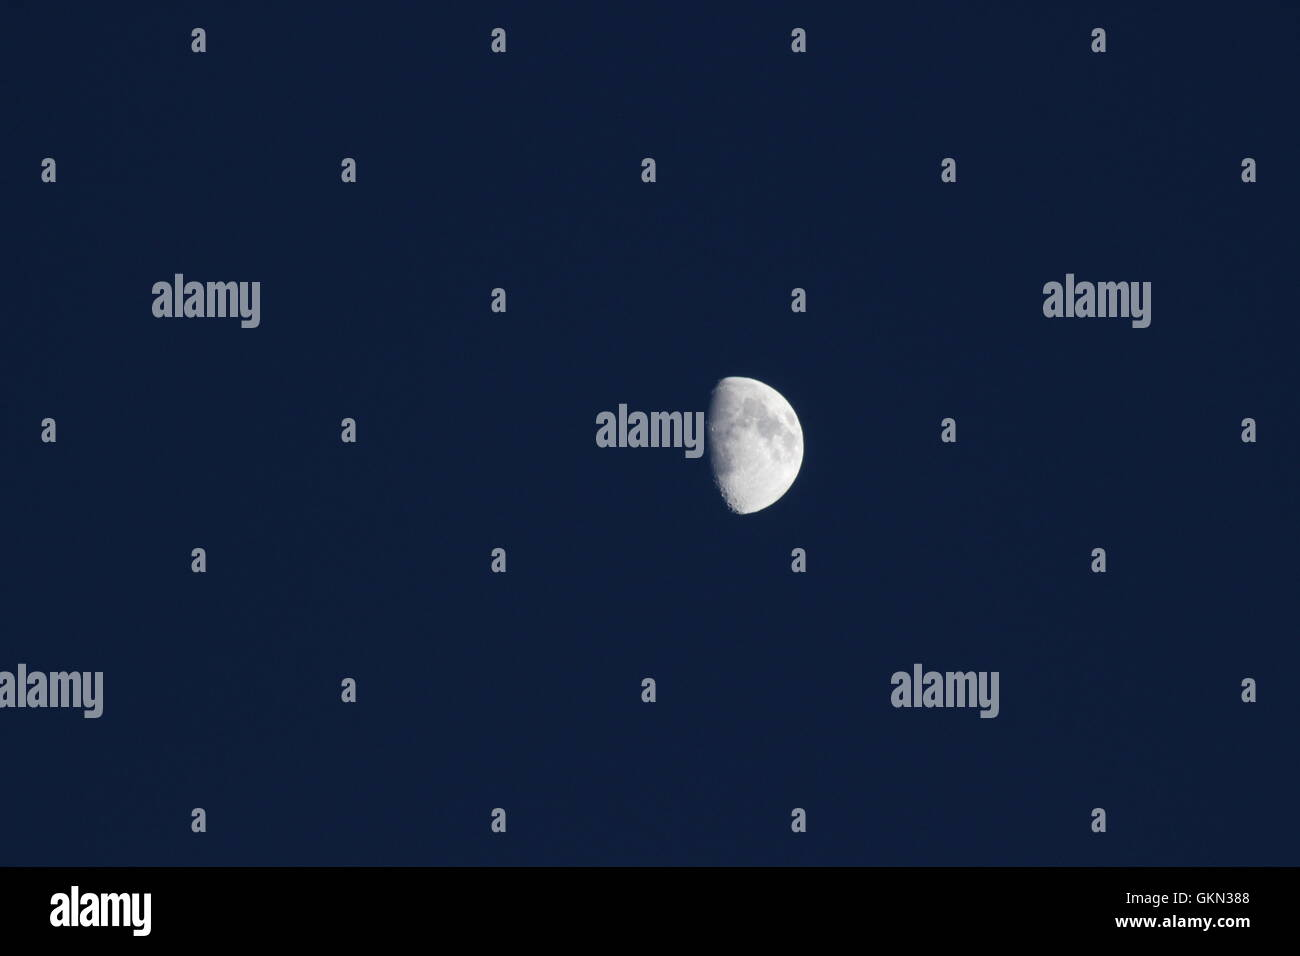 The moon in the night sky (Waxing Gibbous) - Stock Image